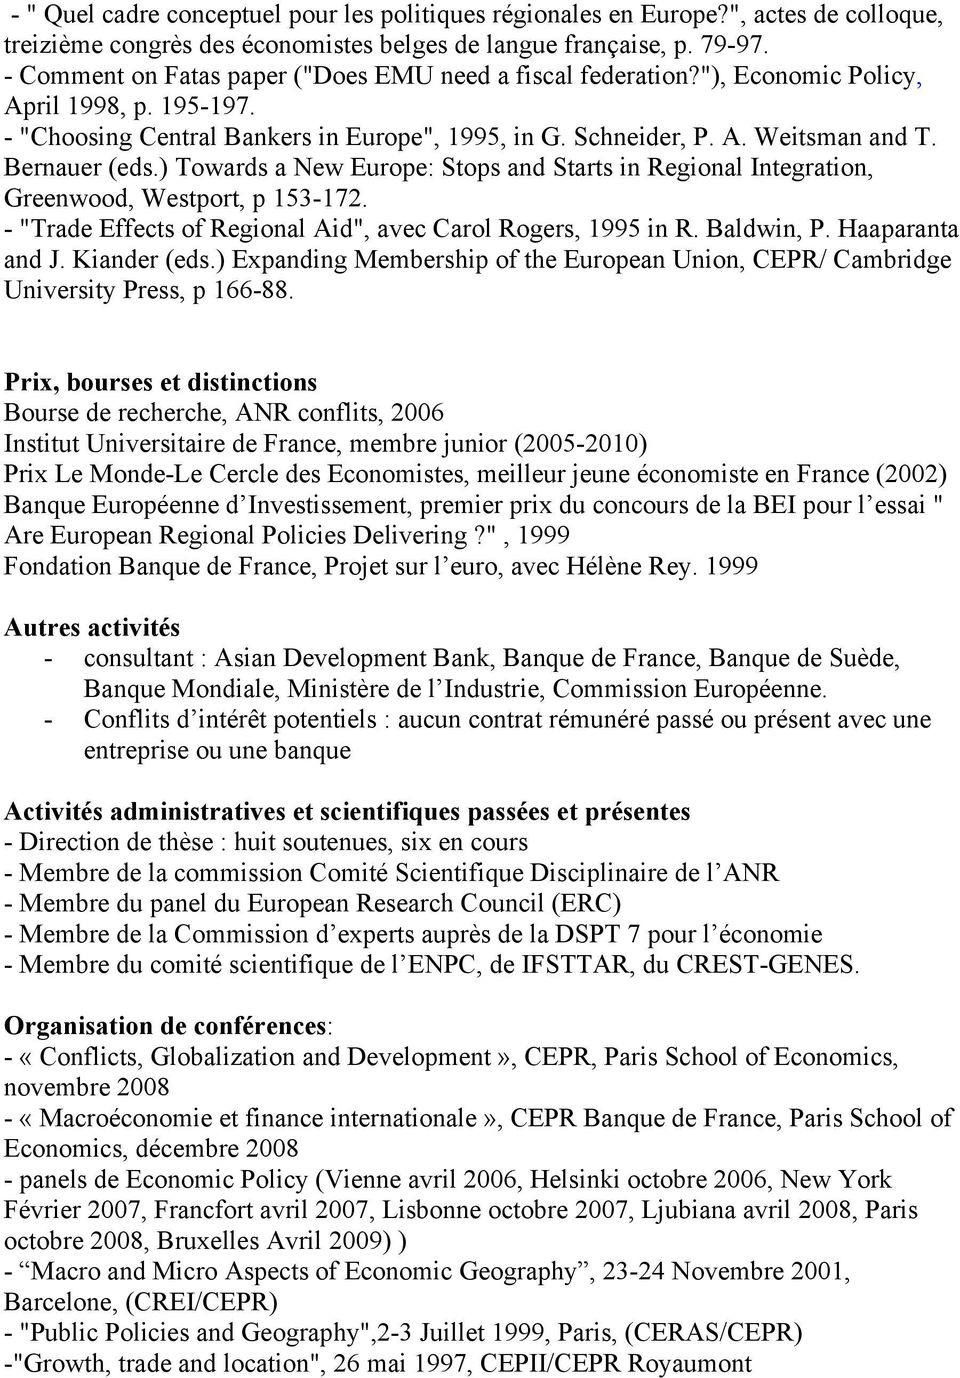 "Bernauer (eds.) Towards a New Europe: Stops and Starts in Regional Integration, Greenwood, Westport, p 153-172. - ""Trade Effects of Regional Aid"", avec Carol Rogers, 1995 in R. Baldwin, P."